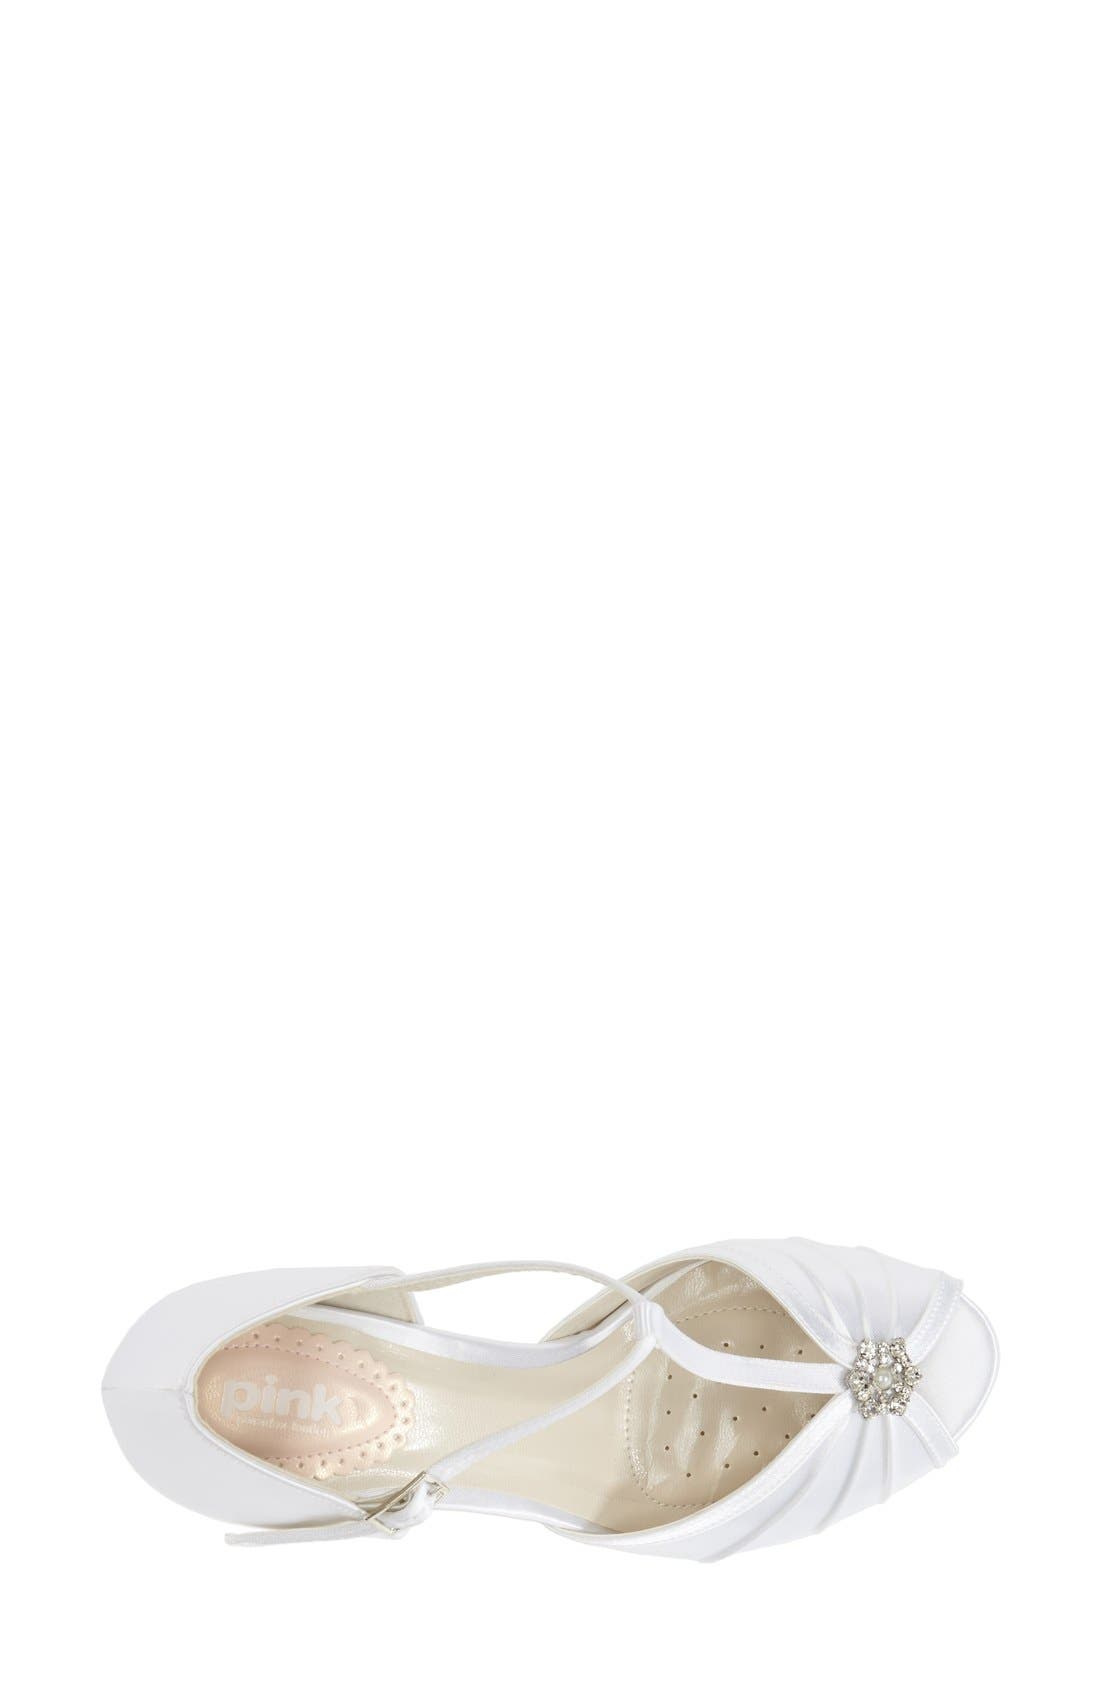 'Perfume' T-Strap Peep Toe Pump,                             Alternate thumbnail 3, color,                             WHITE SATIN